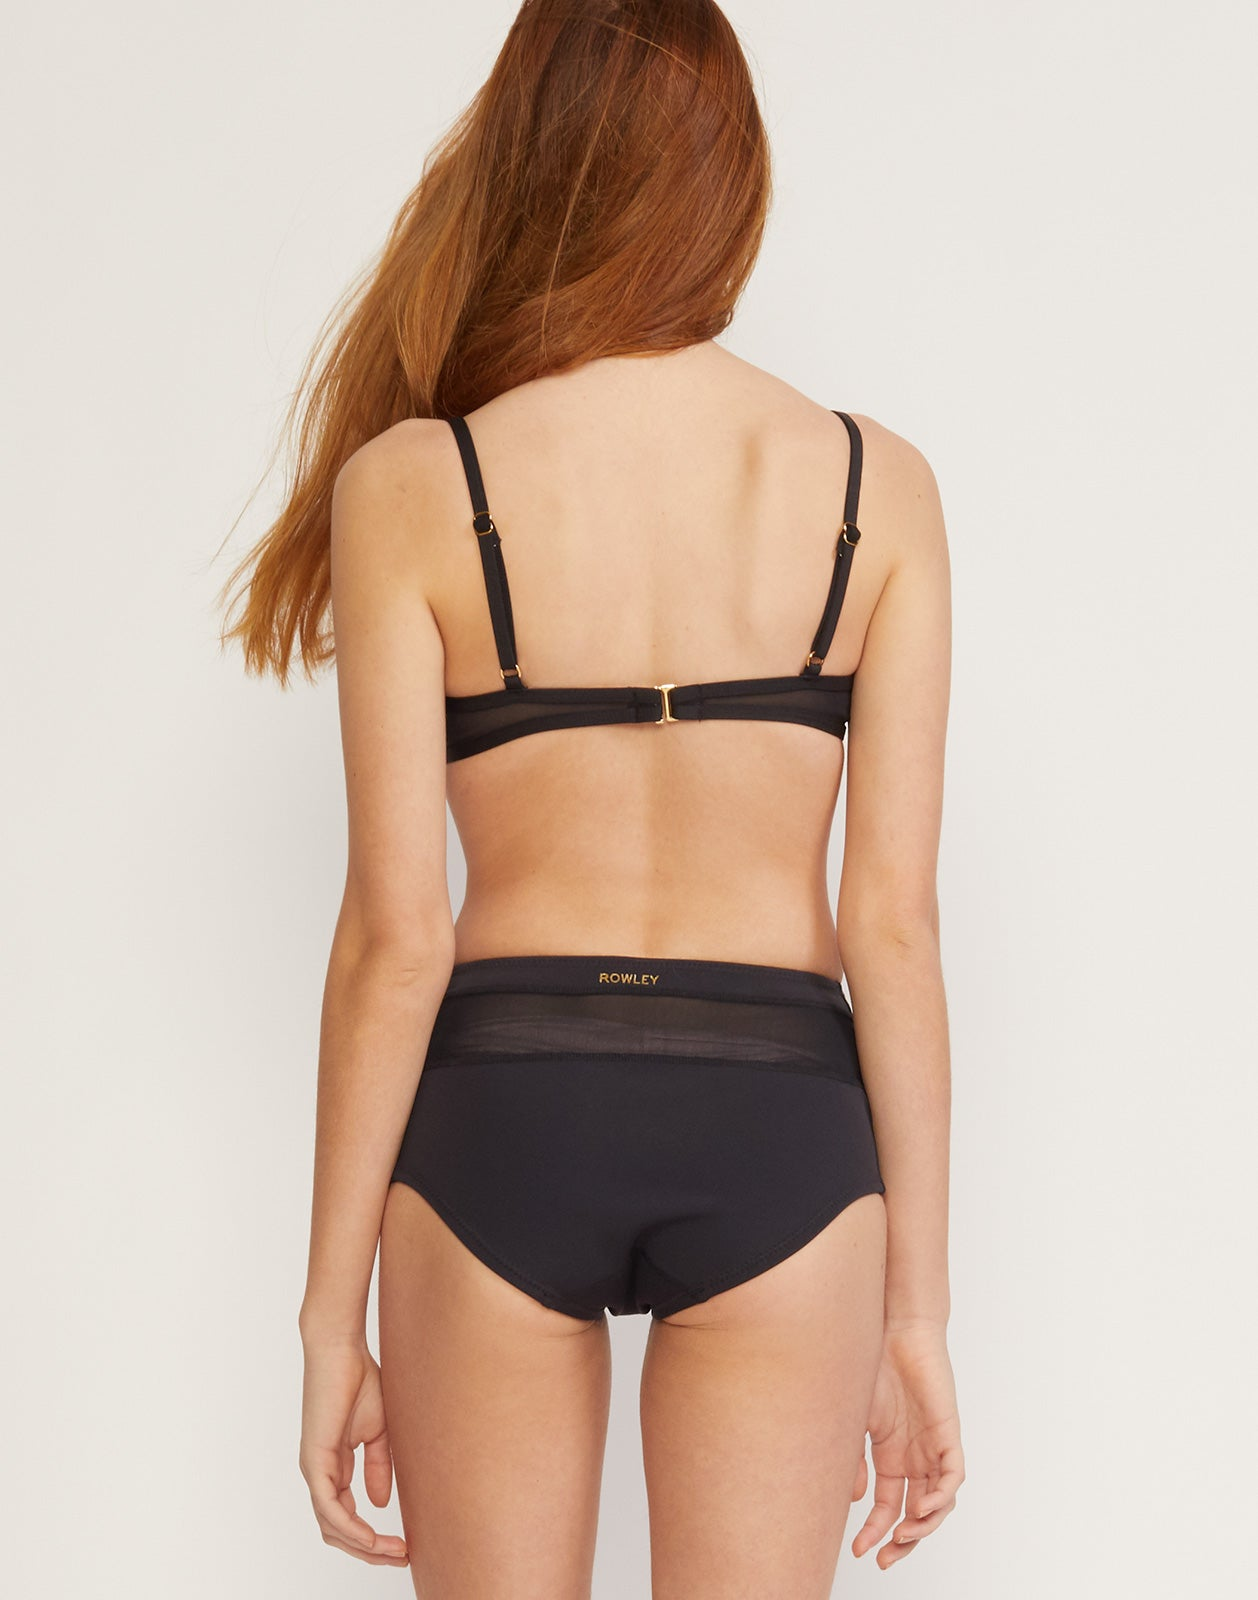 Back view of neoprene bralette bikini top with sheer mesh detail.